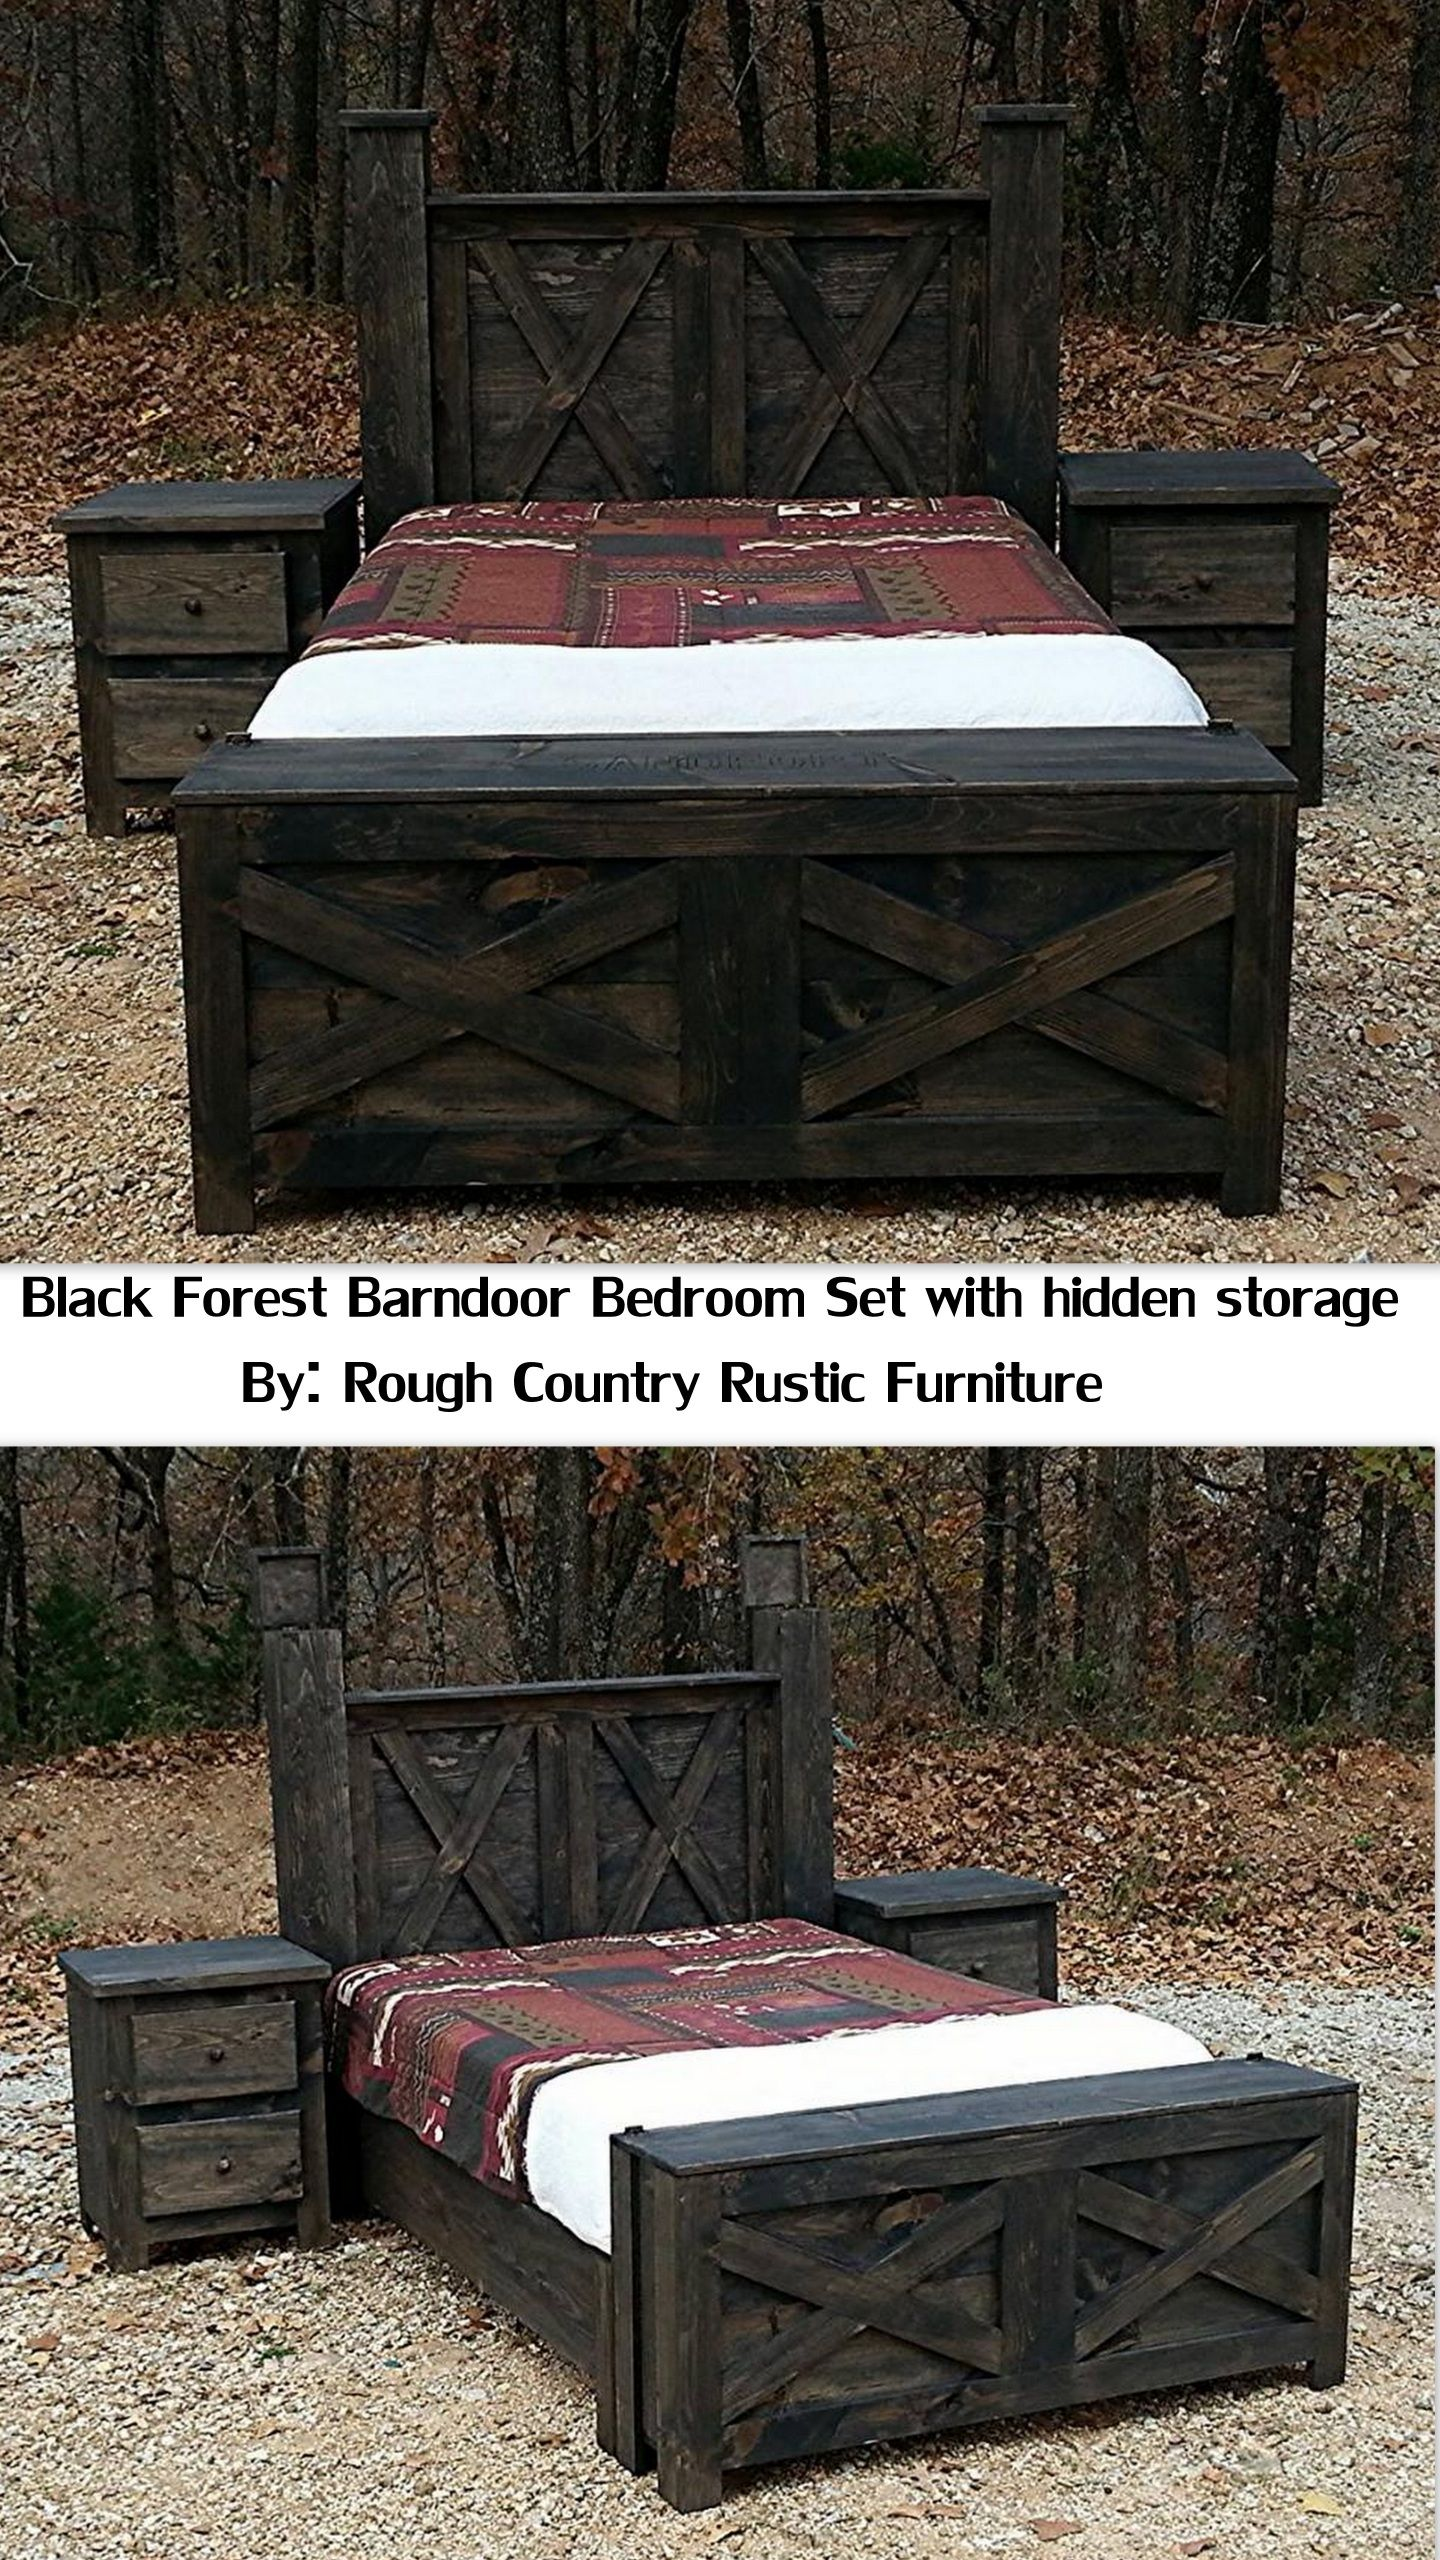 pc tactical black forest barndoor bedroom setprice starting at